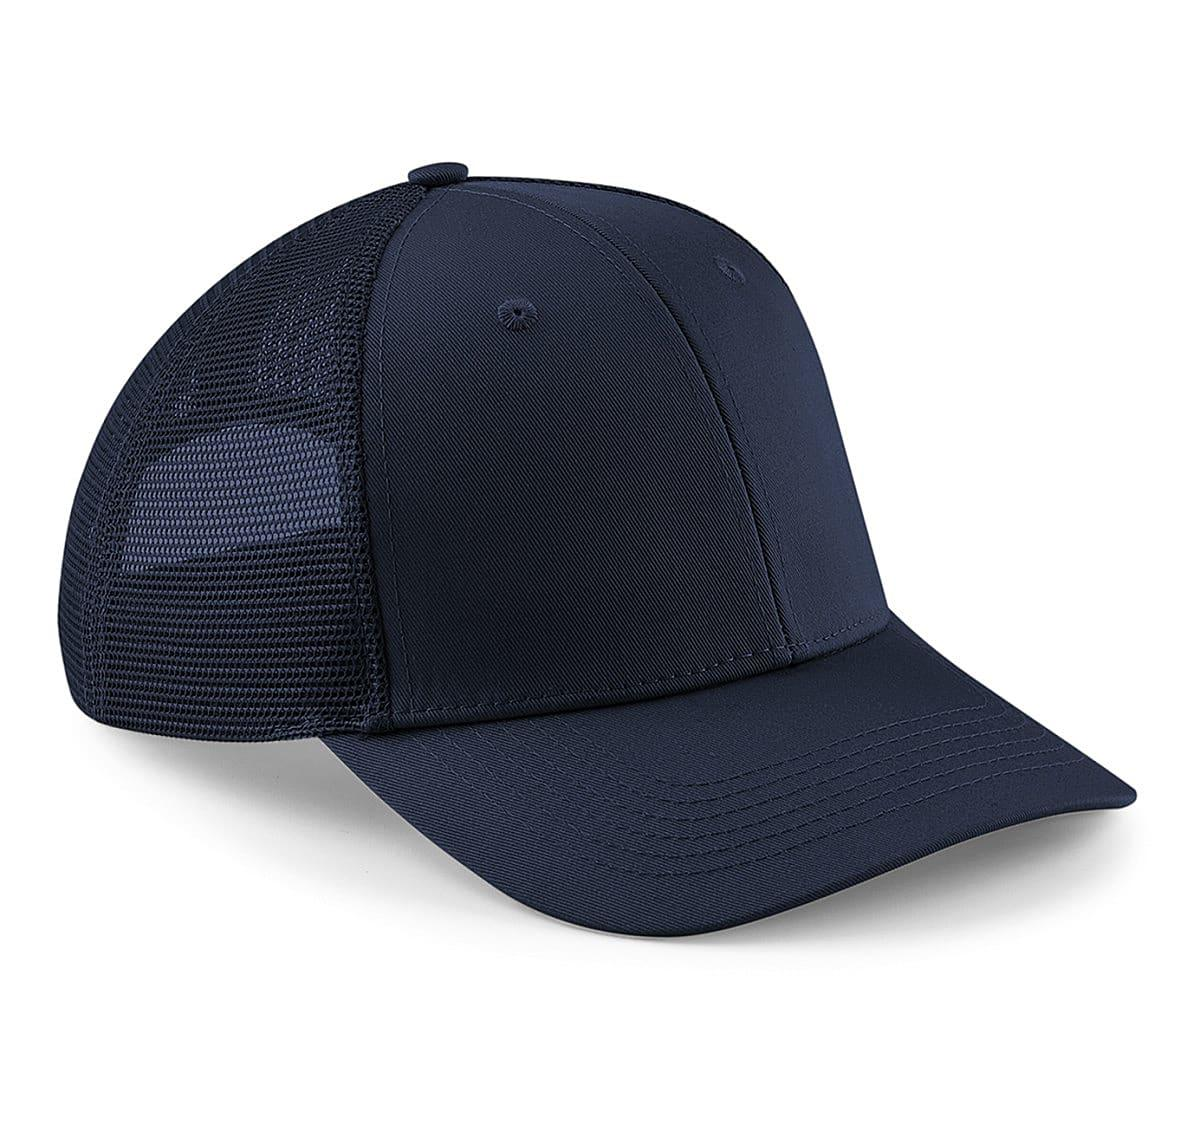 Beechfield Urbanwear Trucker Cap in Navy Blue (Product Code: B646)